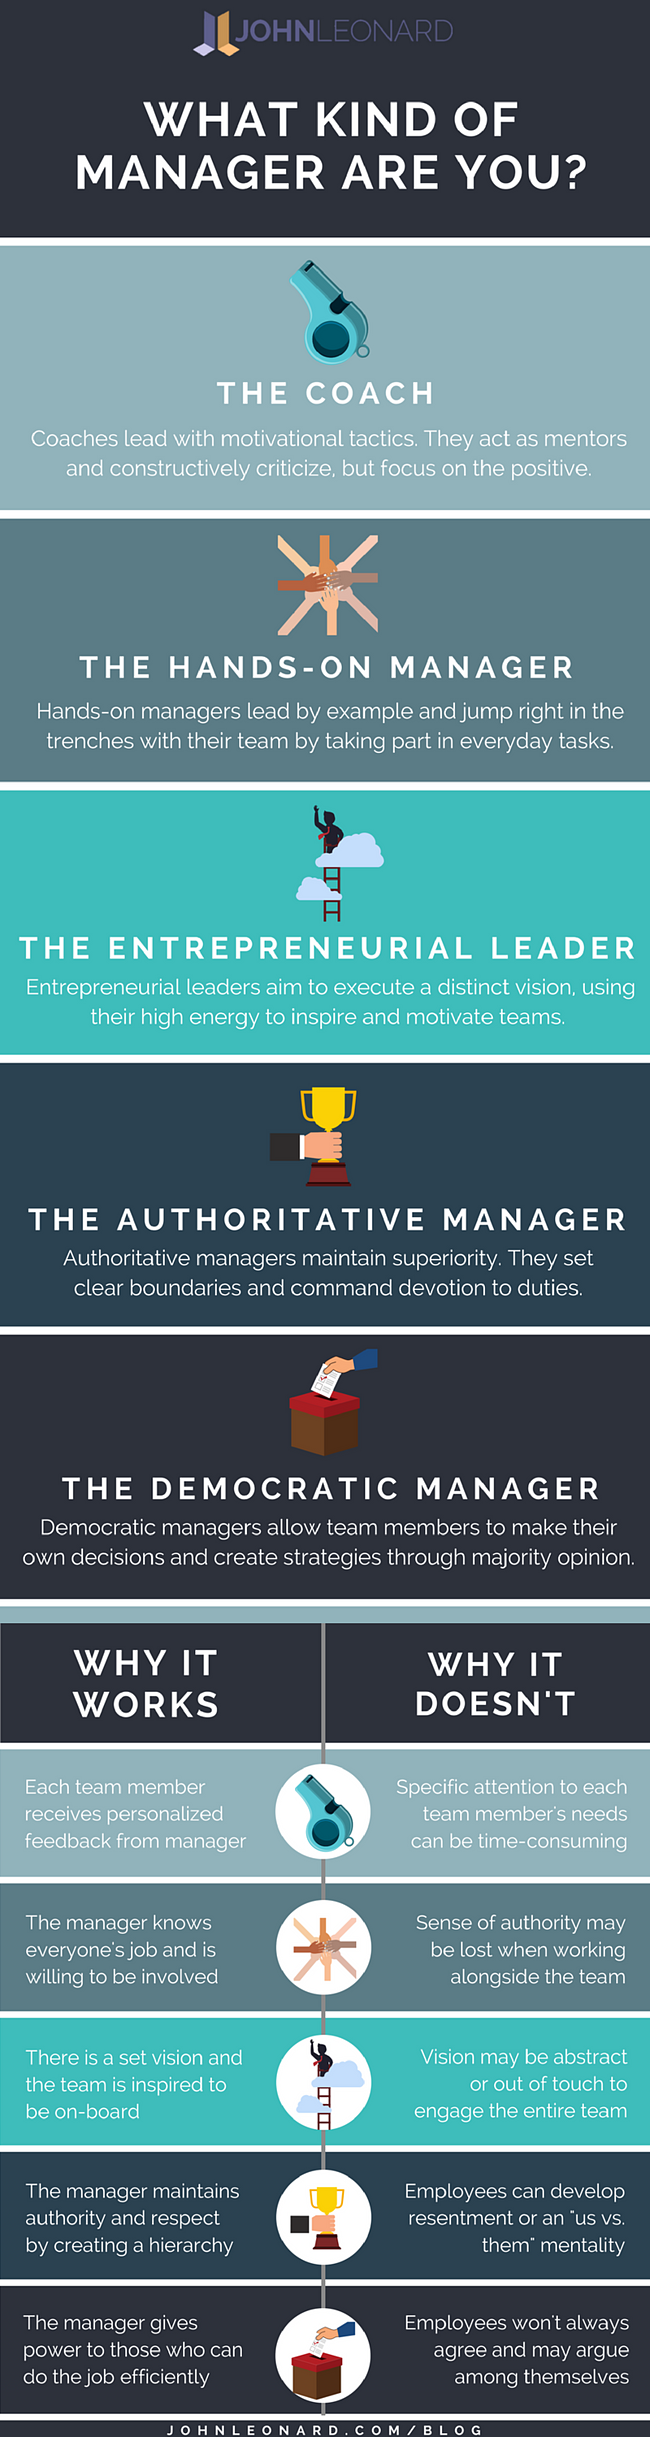 What Kind of Manager Are You (Full Infographic).png